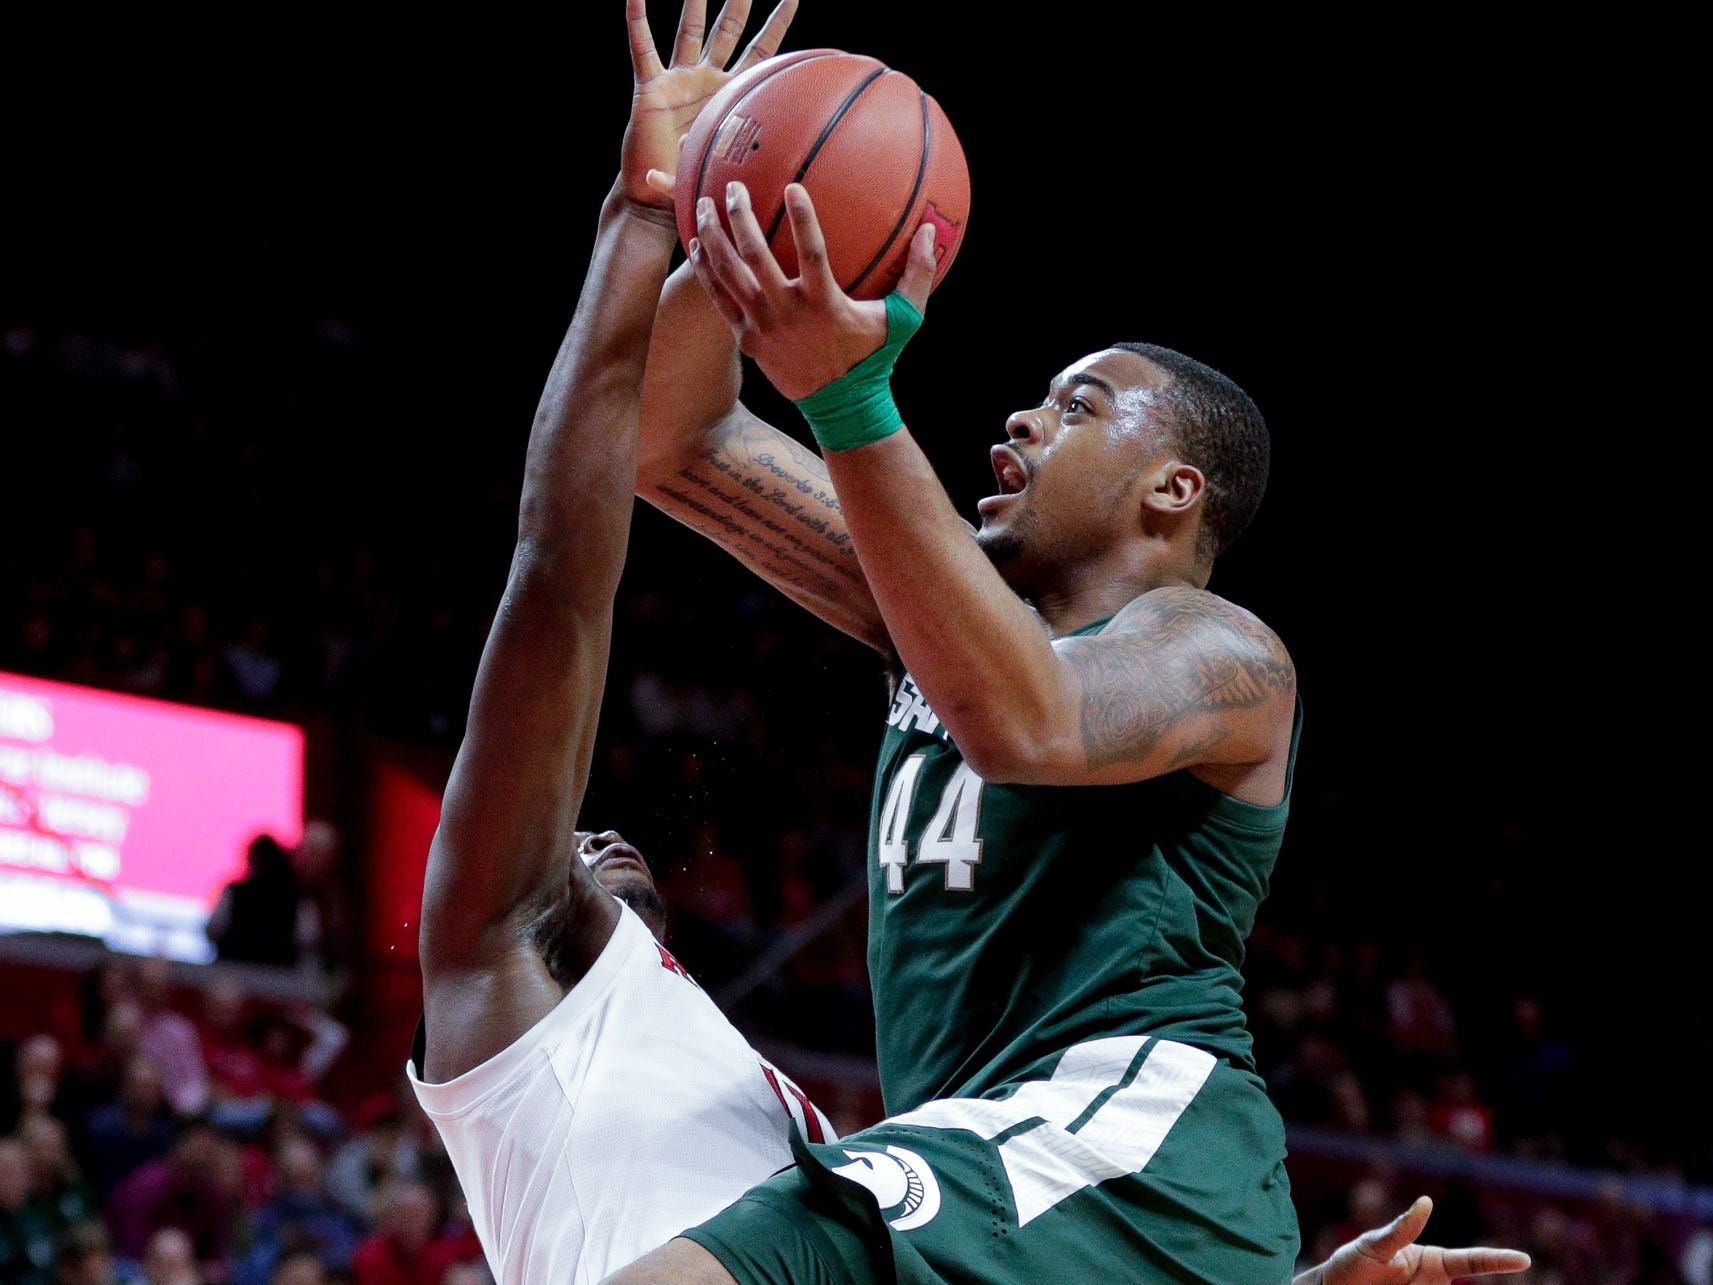 Michigan State forward Nick Ward drives to the basket as Rutgers forward Mamadou Doucoure defends during the first half at Rutgers Athletic Center, Nov. 30, 2018.